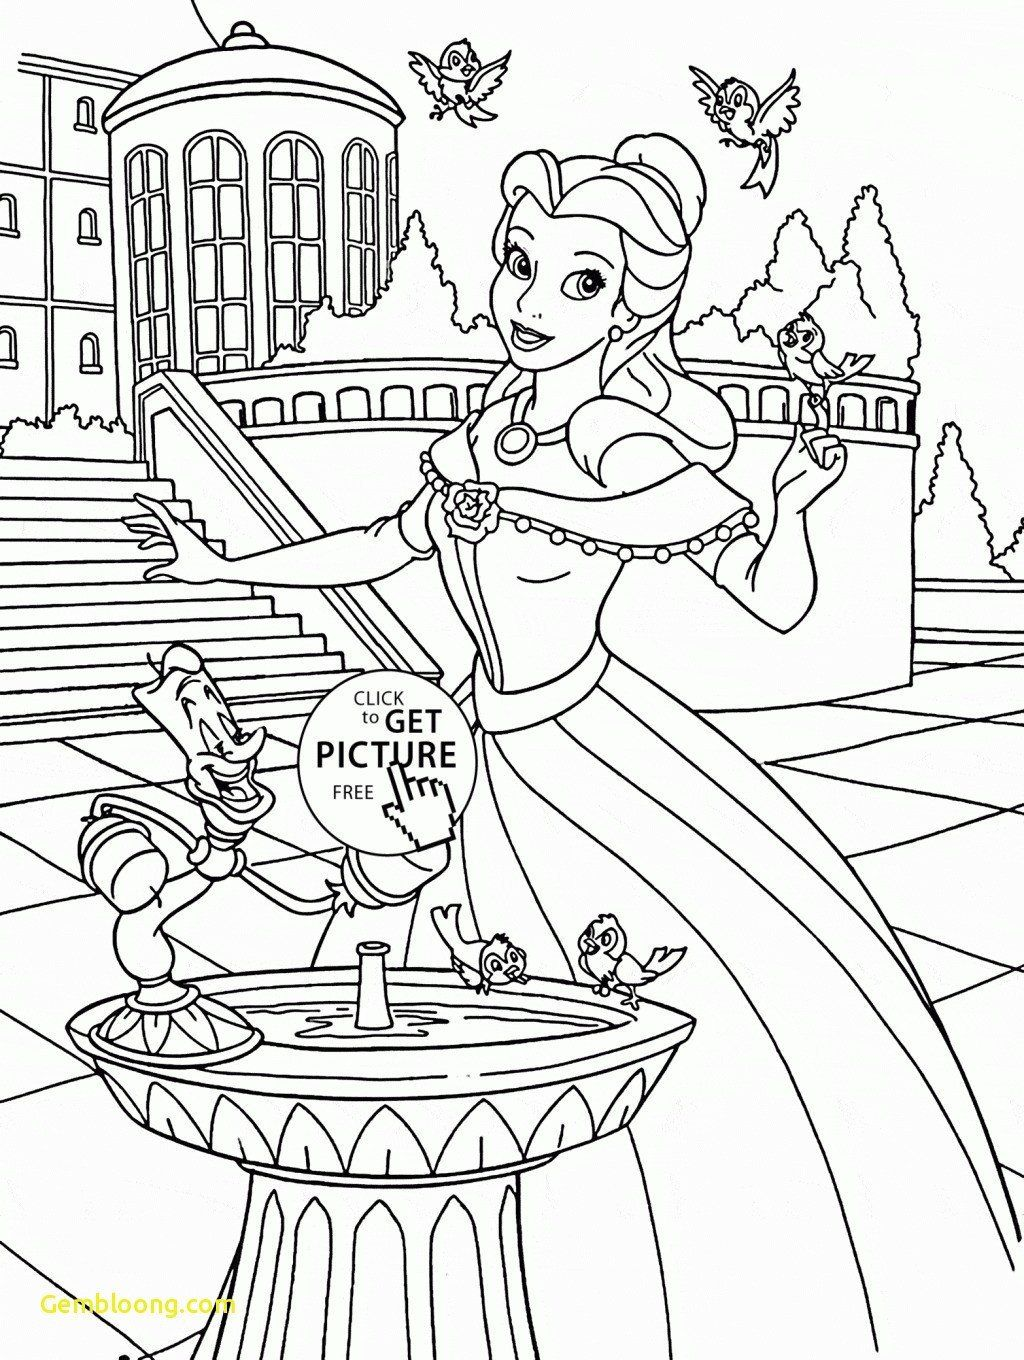 Disney Coloring Book Pdf Inspirational Coloring Ideas 52 Fantastic Detailed Disne In 2020 Disney Princess Coloring Pages Unicorn Coloring Pages Princess Coloring Pages